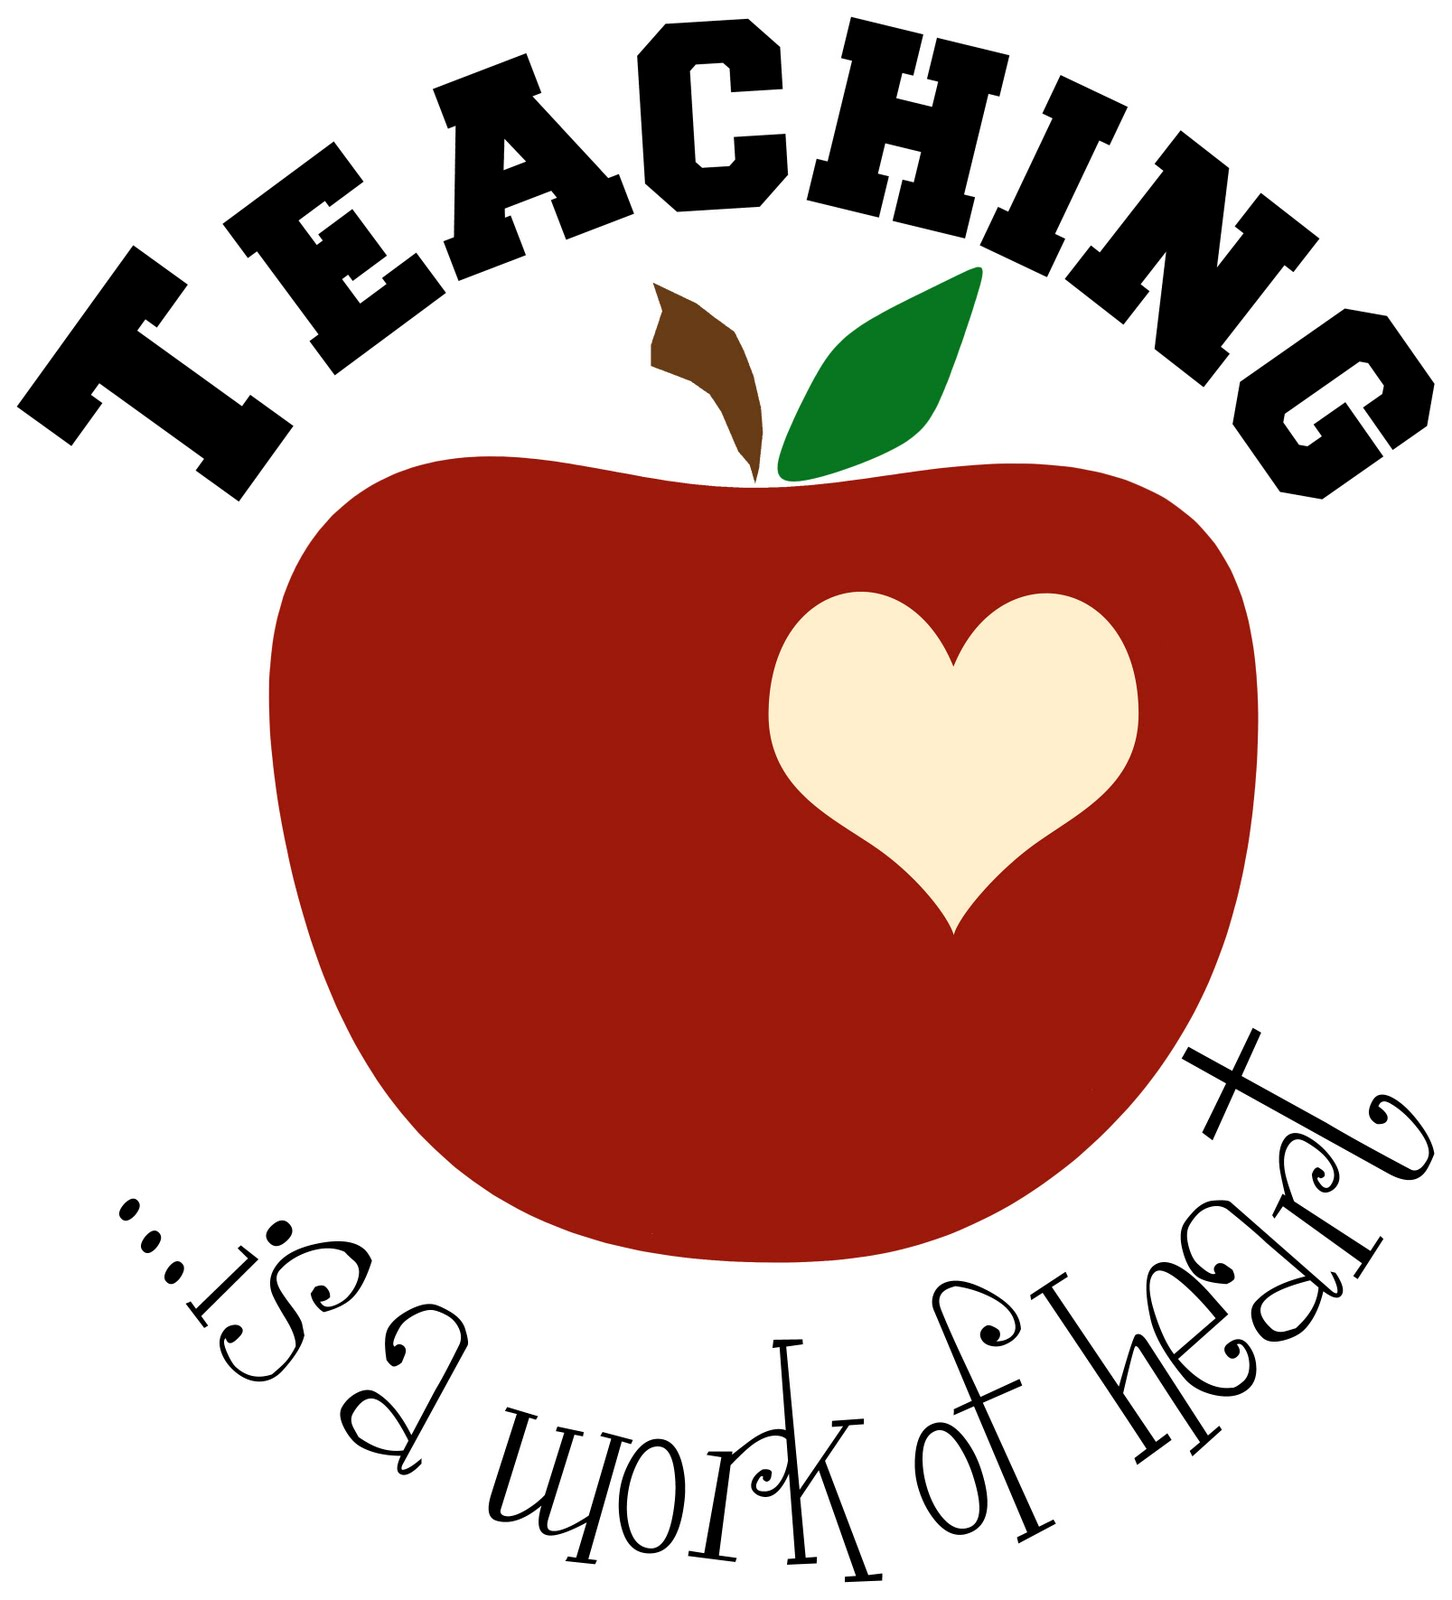 Clipart of the apple teacher free image.